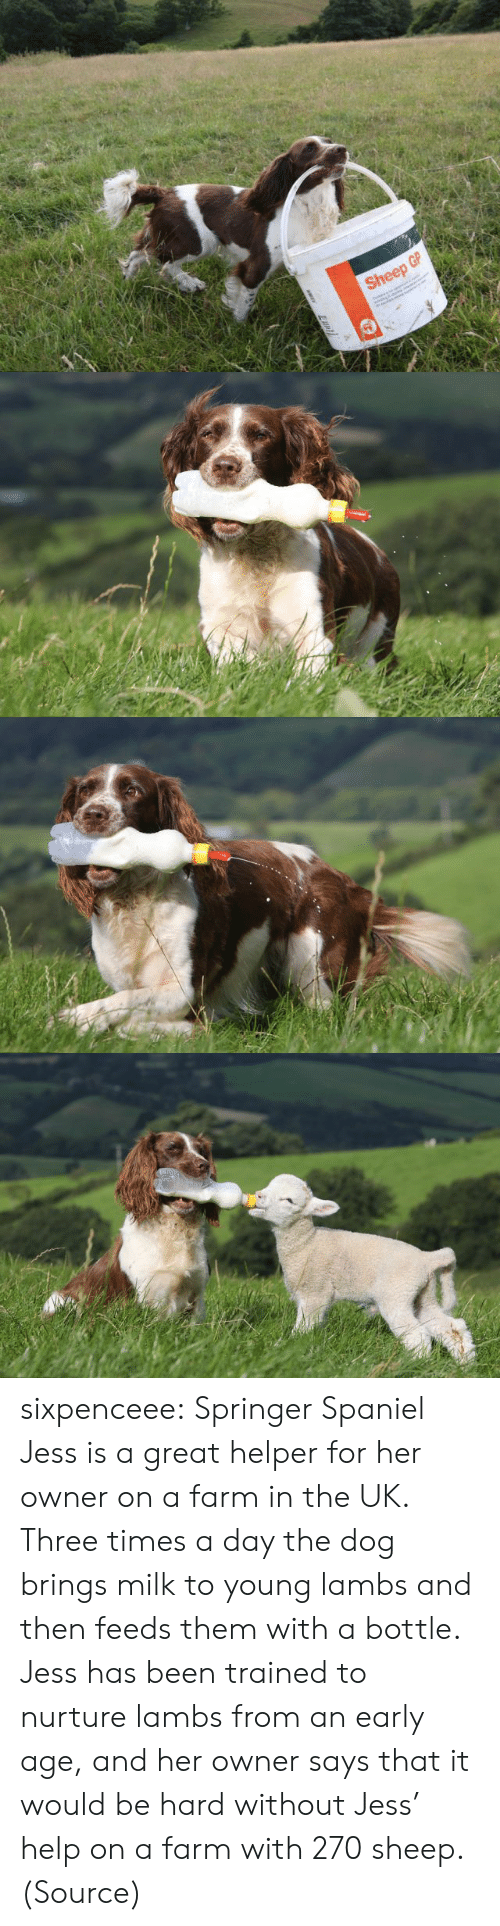 Tumblr, Blog, and Help: Sheep GP sixpenceee:  Springer Spaniel Jess is a great helper for her owner on a farm in the UK. Three times a day the dog brings milk to young lambs and then feeds them with a bottle. Jess has been trained to nurture lambs from an early age, and her owner says that it would be hard without Jess' help on a farm with 270 sheep. (Source)